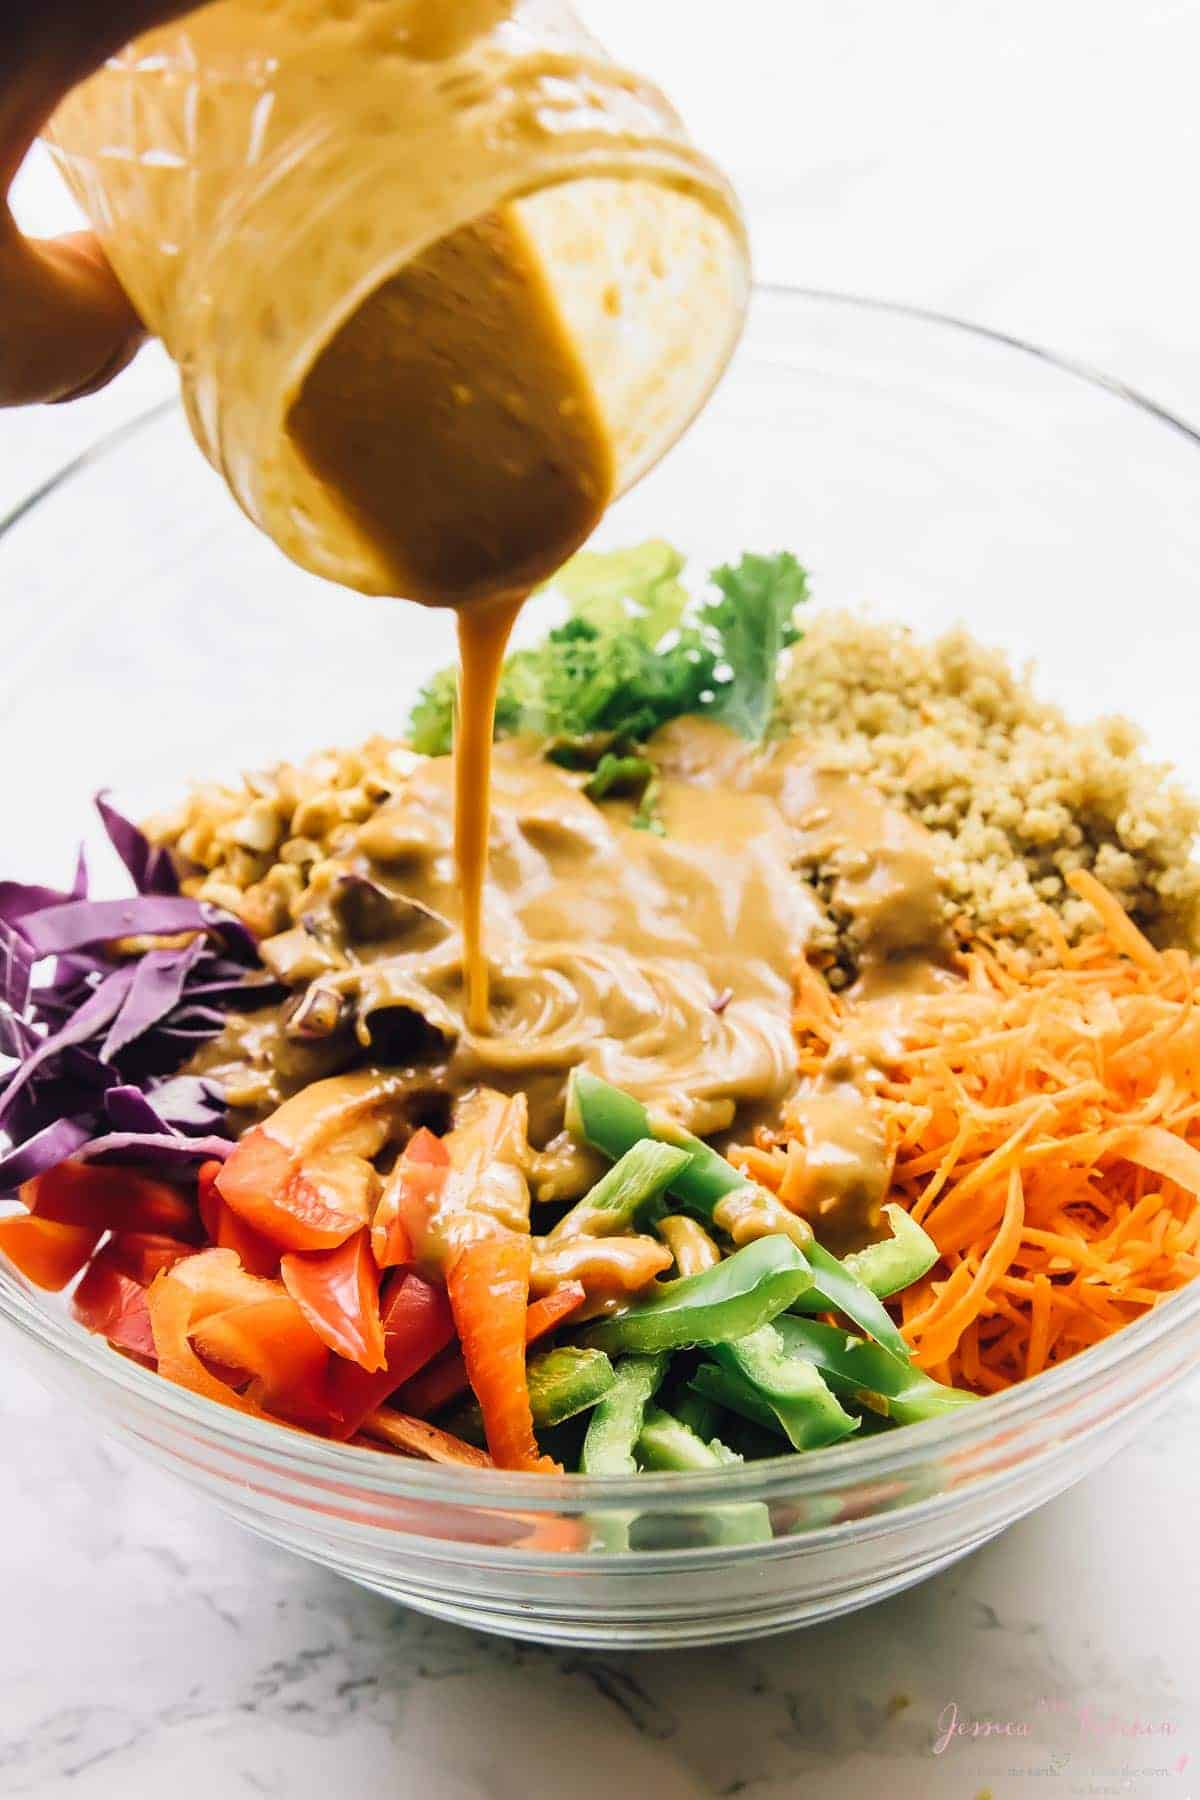 The peanut ginger sauce sauce being poured into a clear glass bowl with salad fixings in them